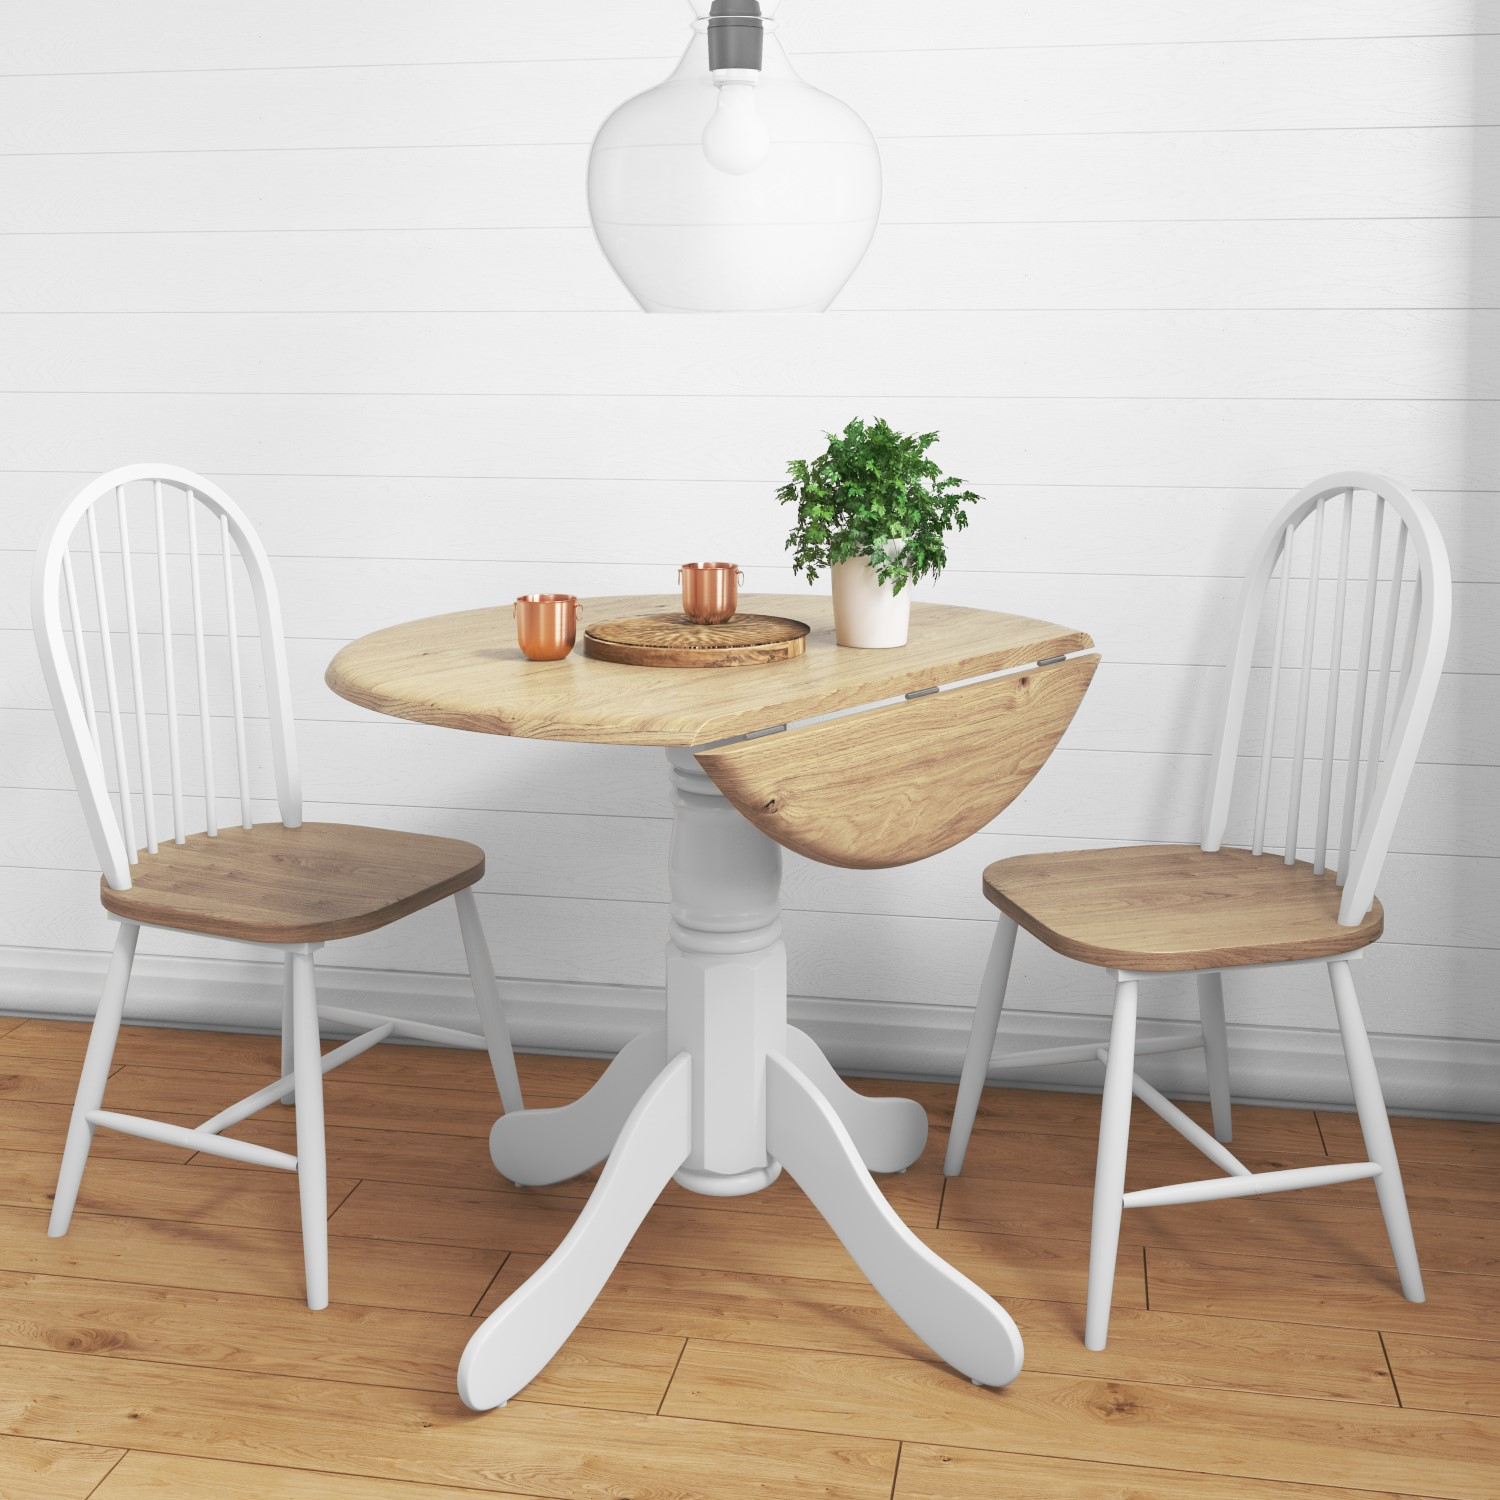 Rhode Island Round Drop Leaf Table + 2 Windsor Chairs BUN/RHD008/69398 & Rhode Island Round Drop Leaf Table + 2 Windsor Chairs | Furniture123